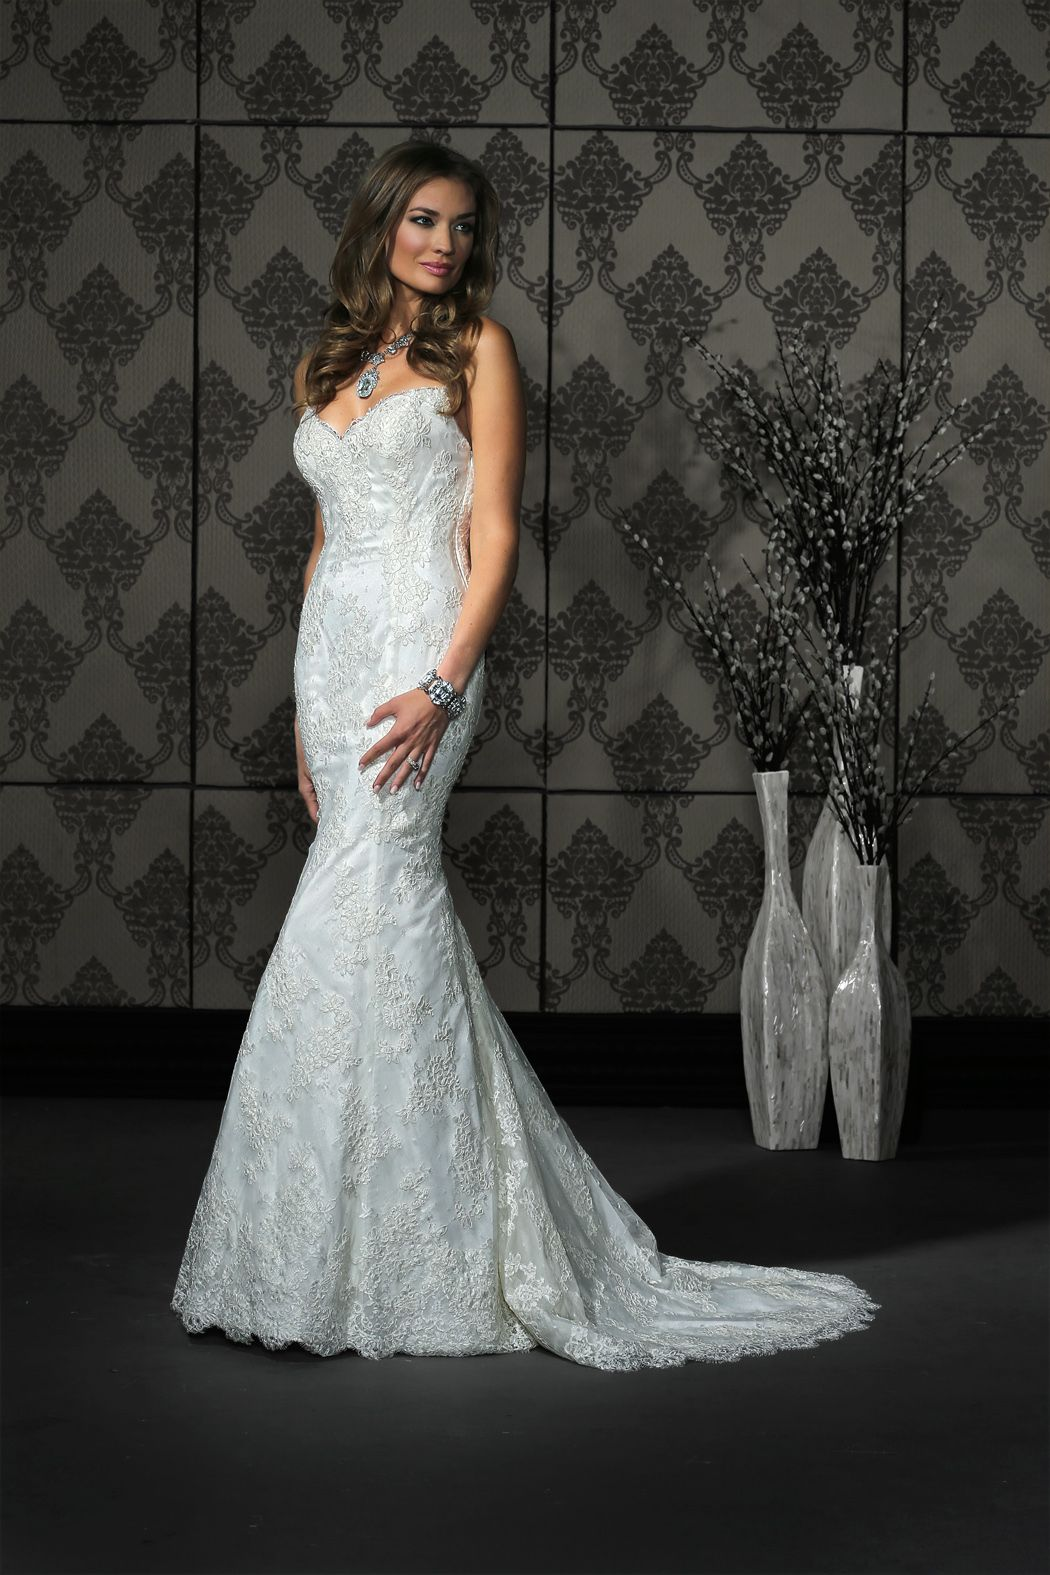 Style features classic all over lace and a surprise illusion